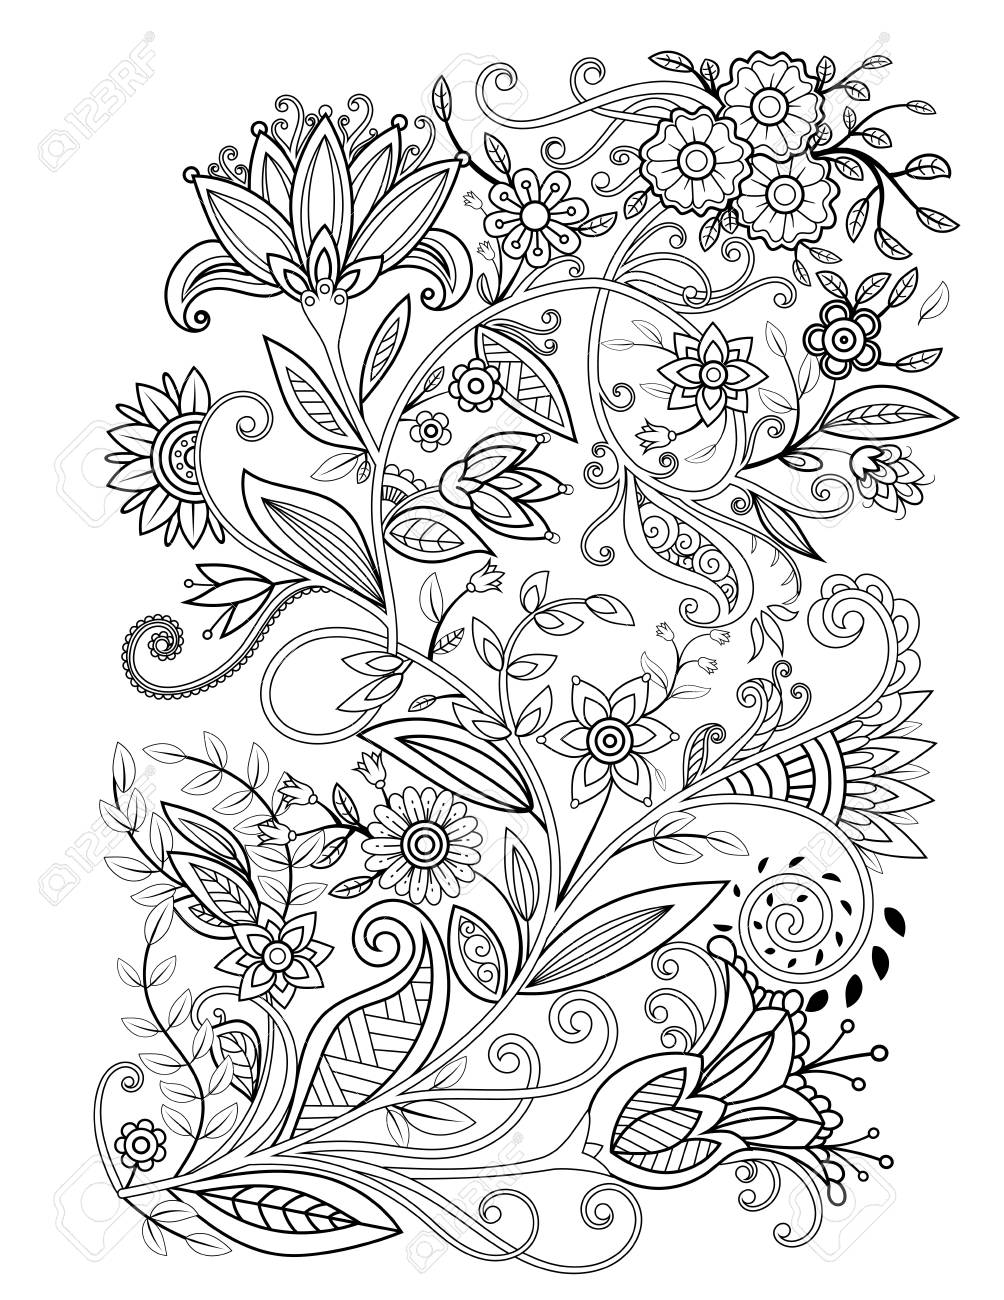 Floral adult coloring page. Black and white doodle flowers. Bouquet line art vector illustration isolated on white background. Design elements - 116070213